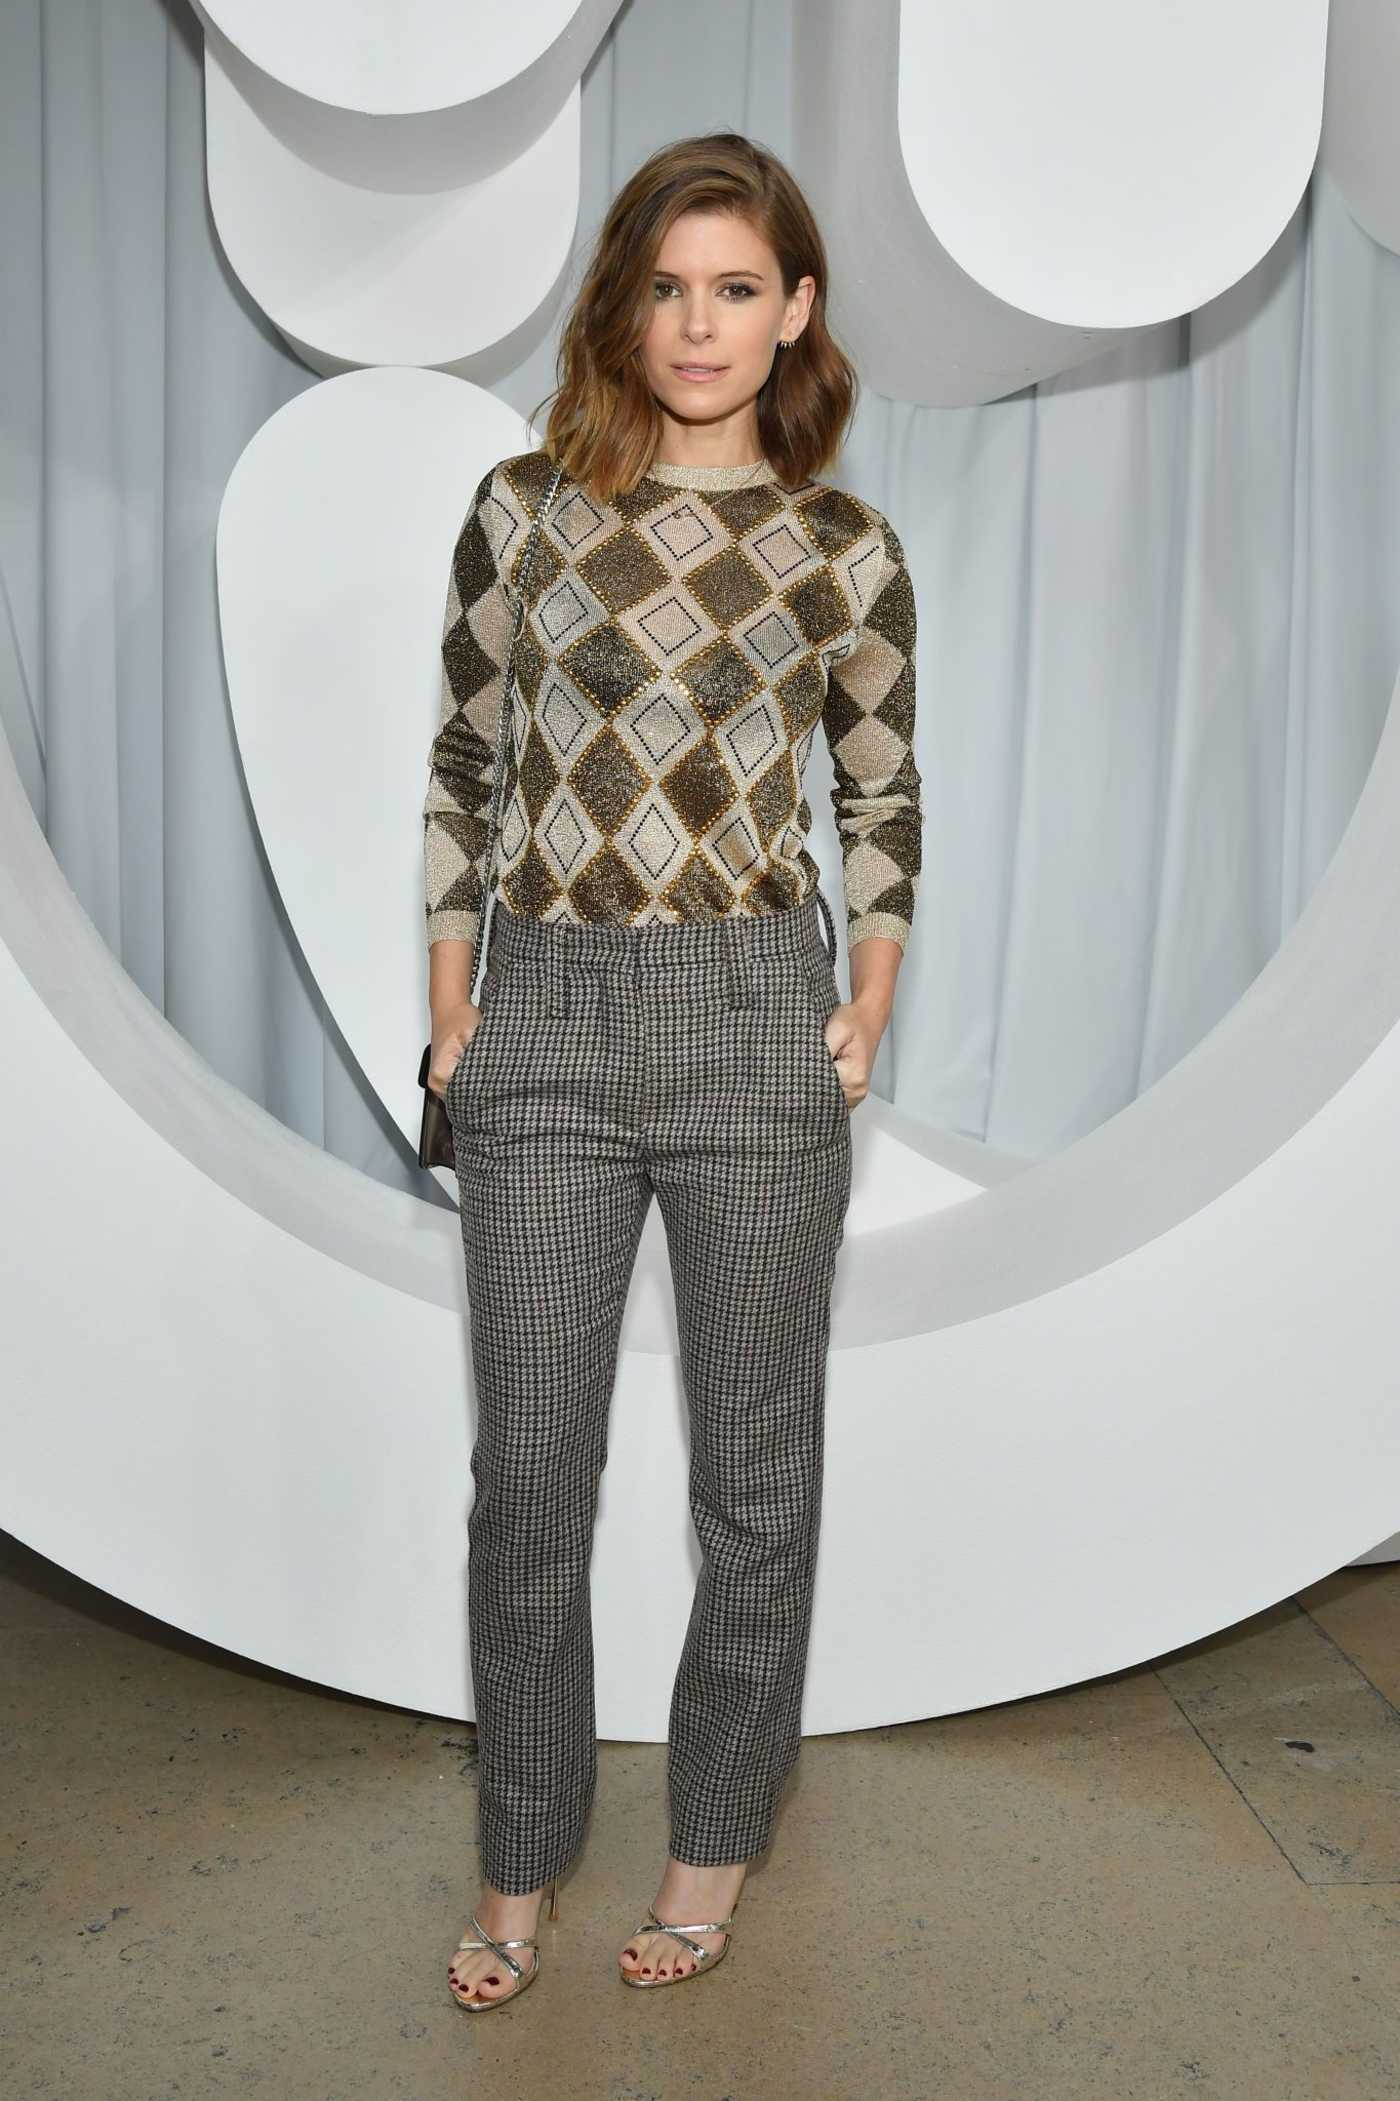 Kate Mara Attends the Miu Miu Show During the Paris Fashion Week in Paris 10/02/2018